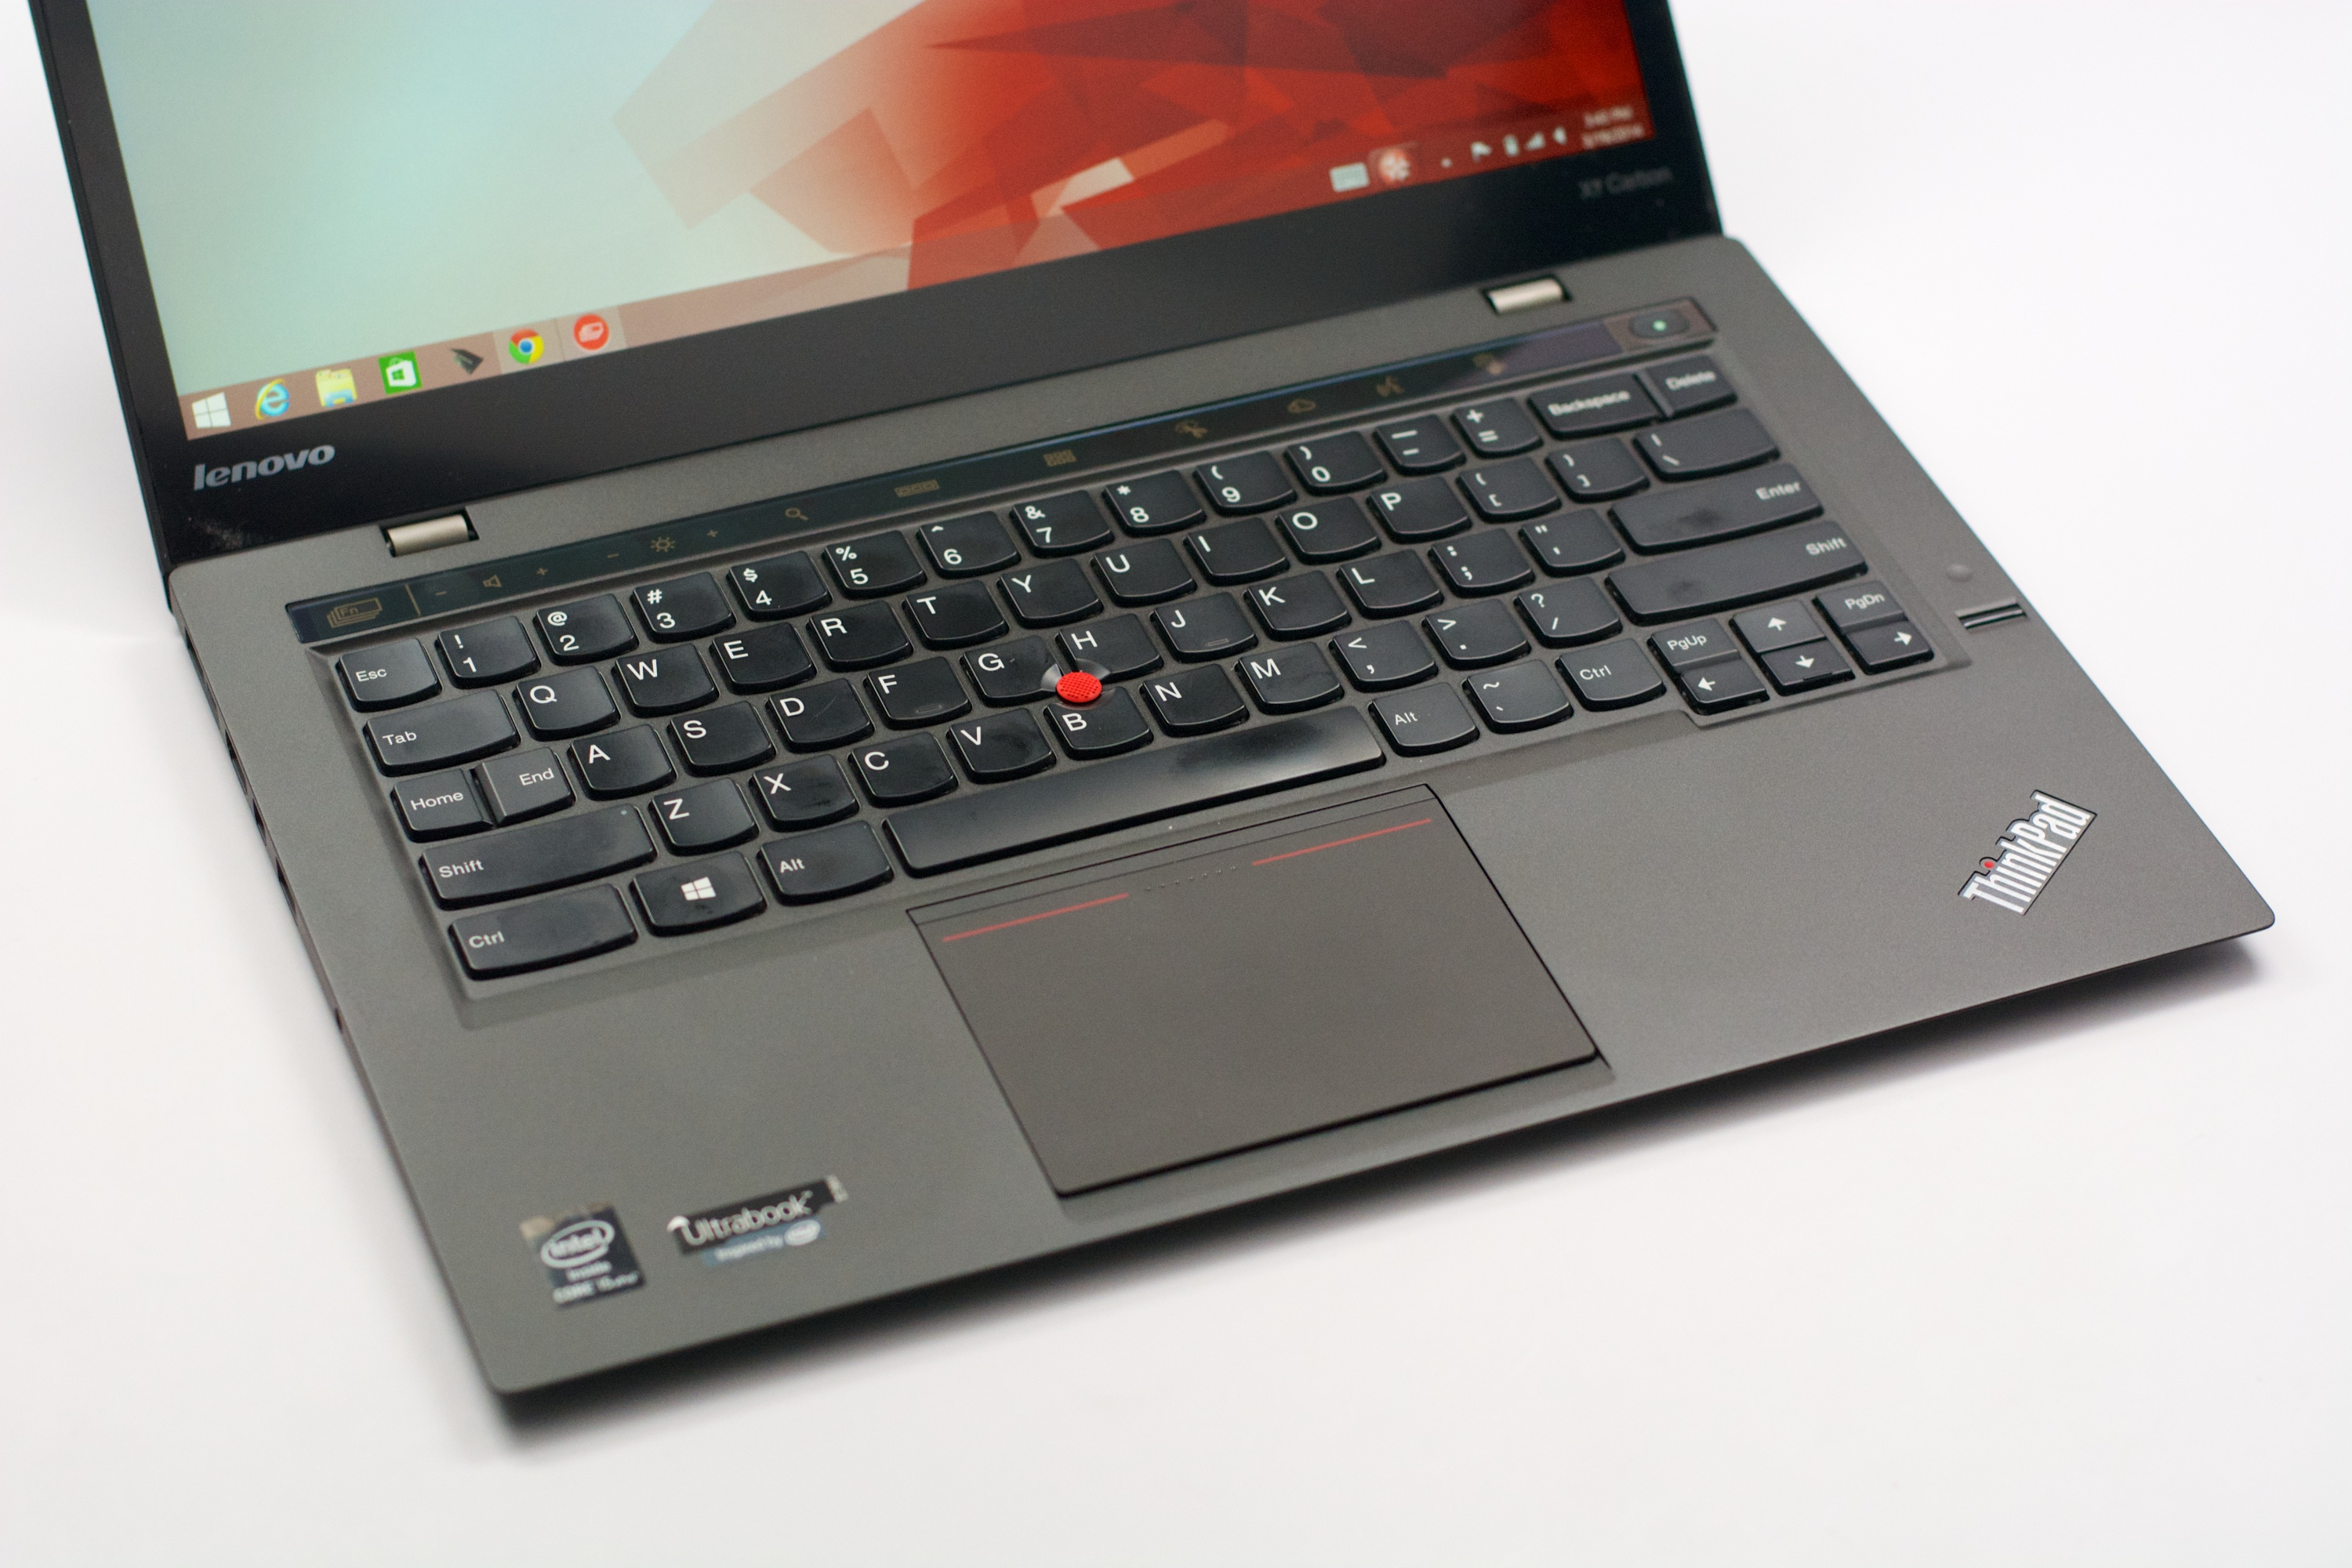 Lenovo ThinkPad X1 Carbon Review (2014): 4 Reasons it's